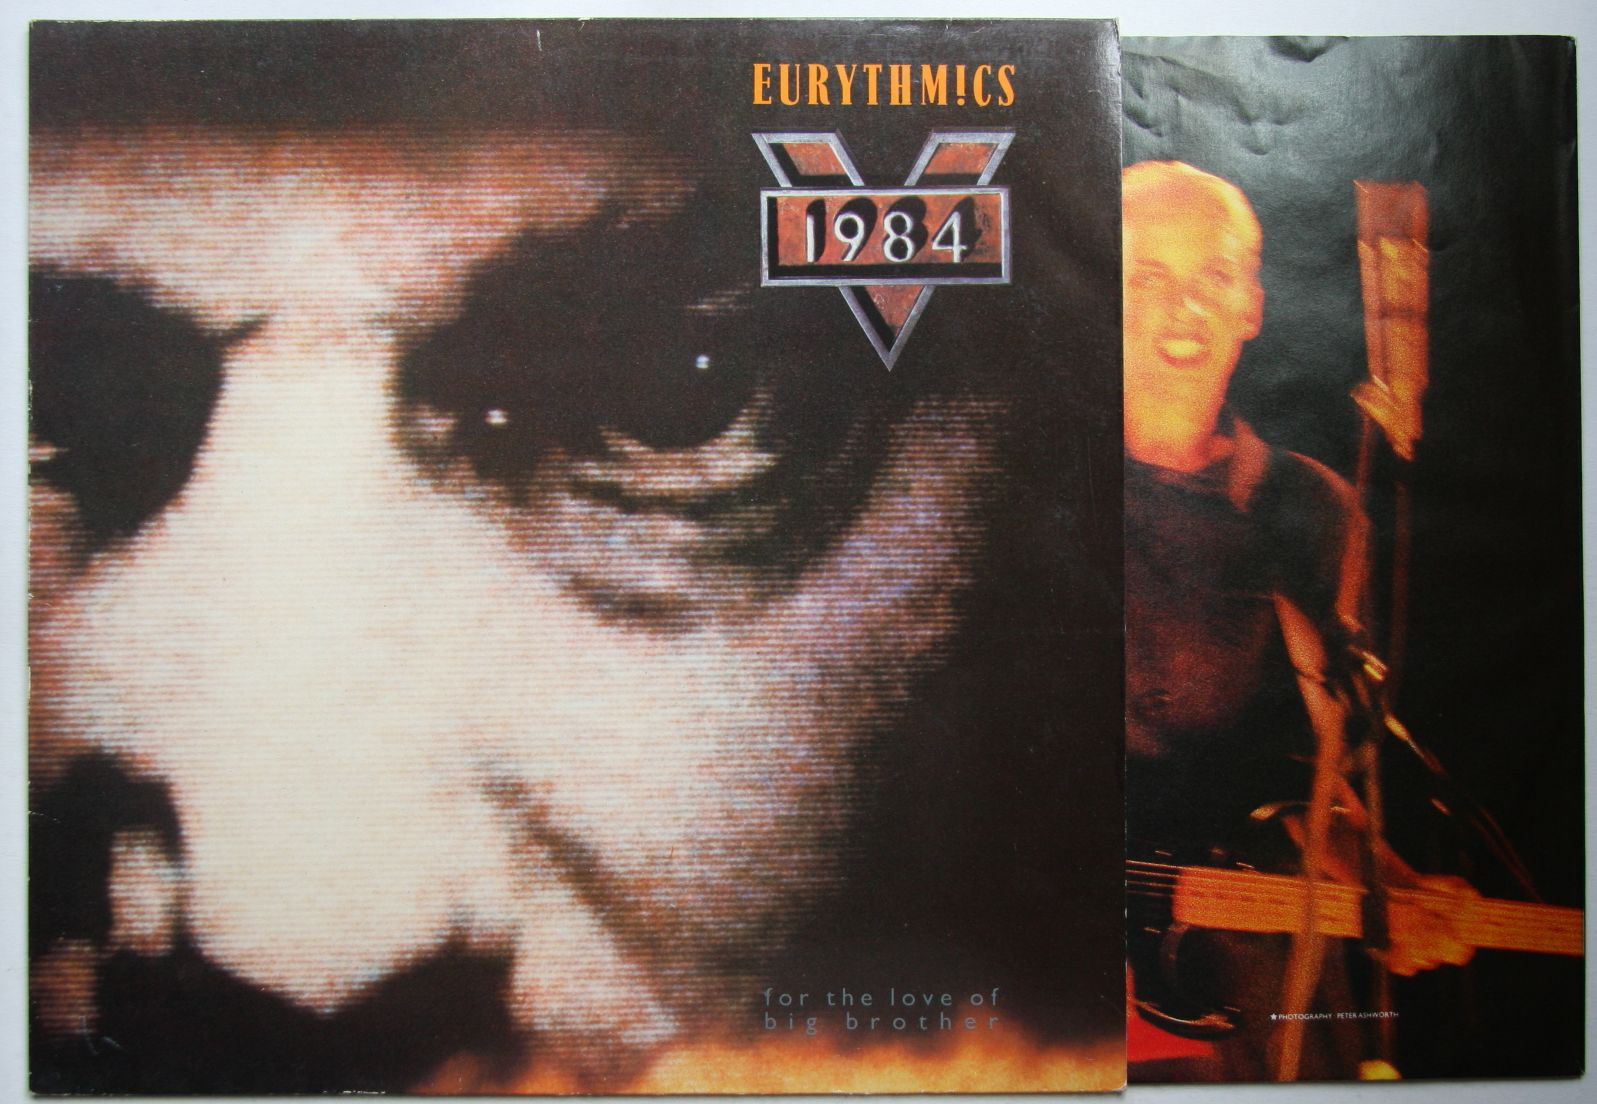 Eurythmics - 1984 - For The Love Of Big Brother